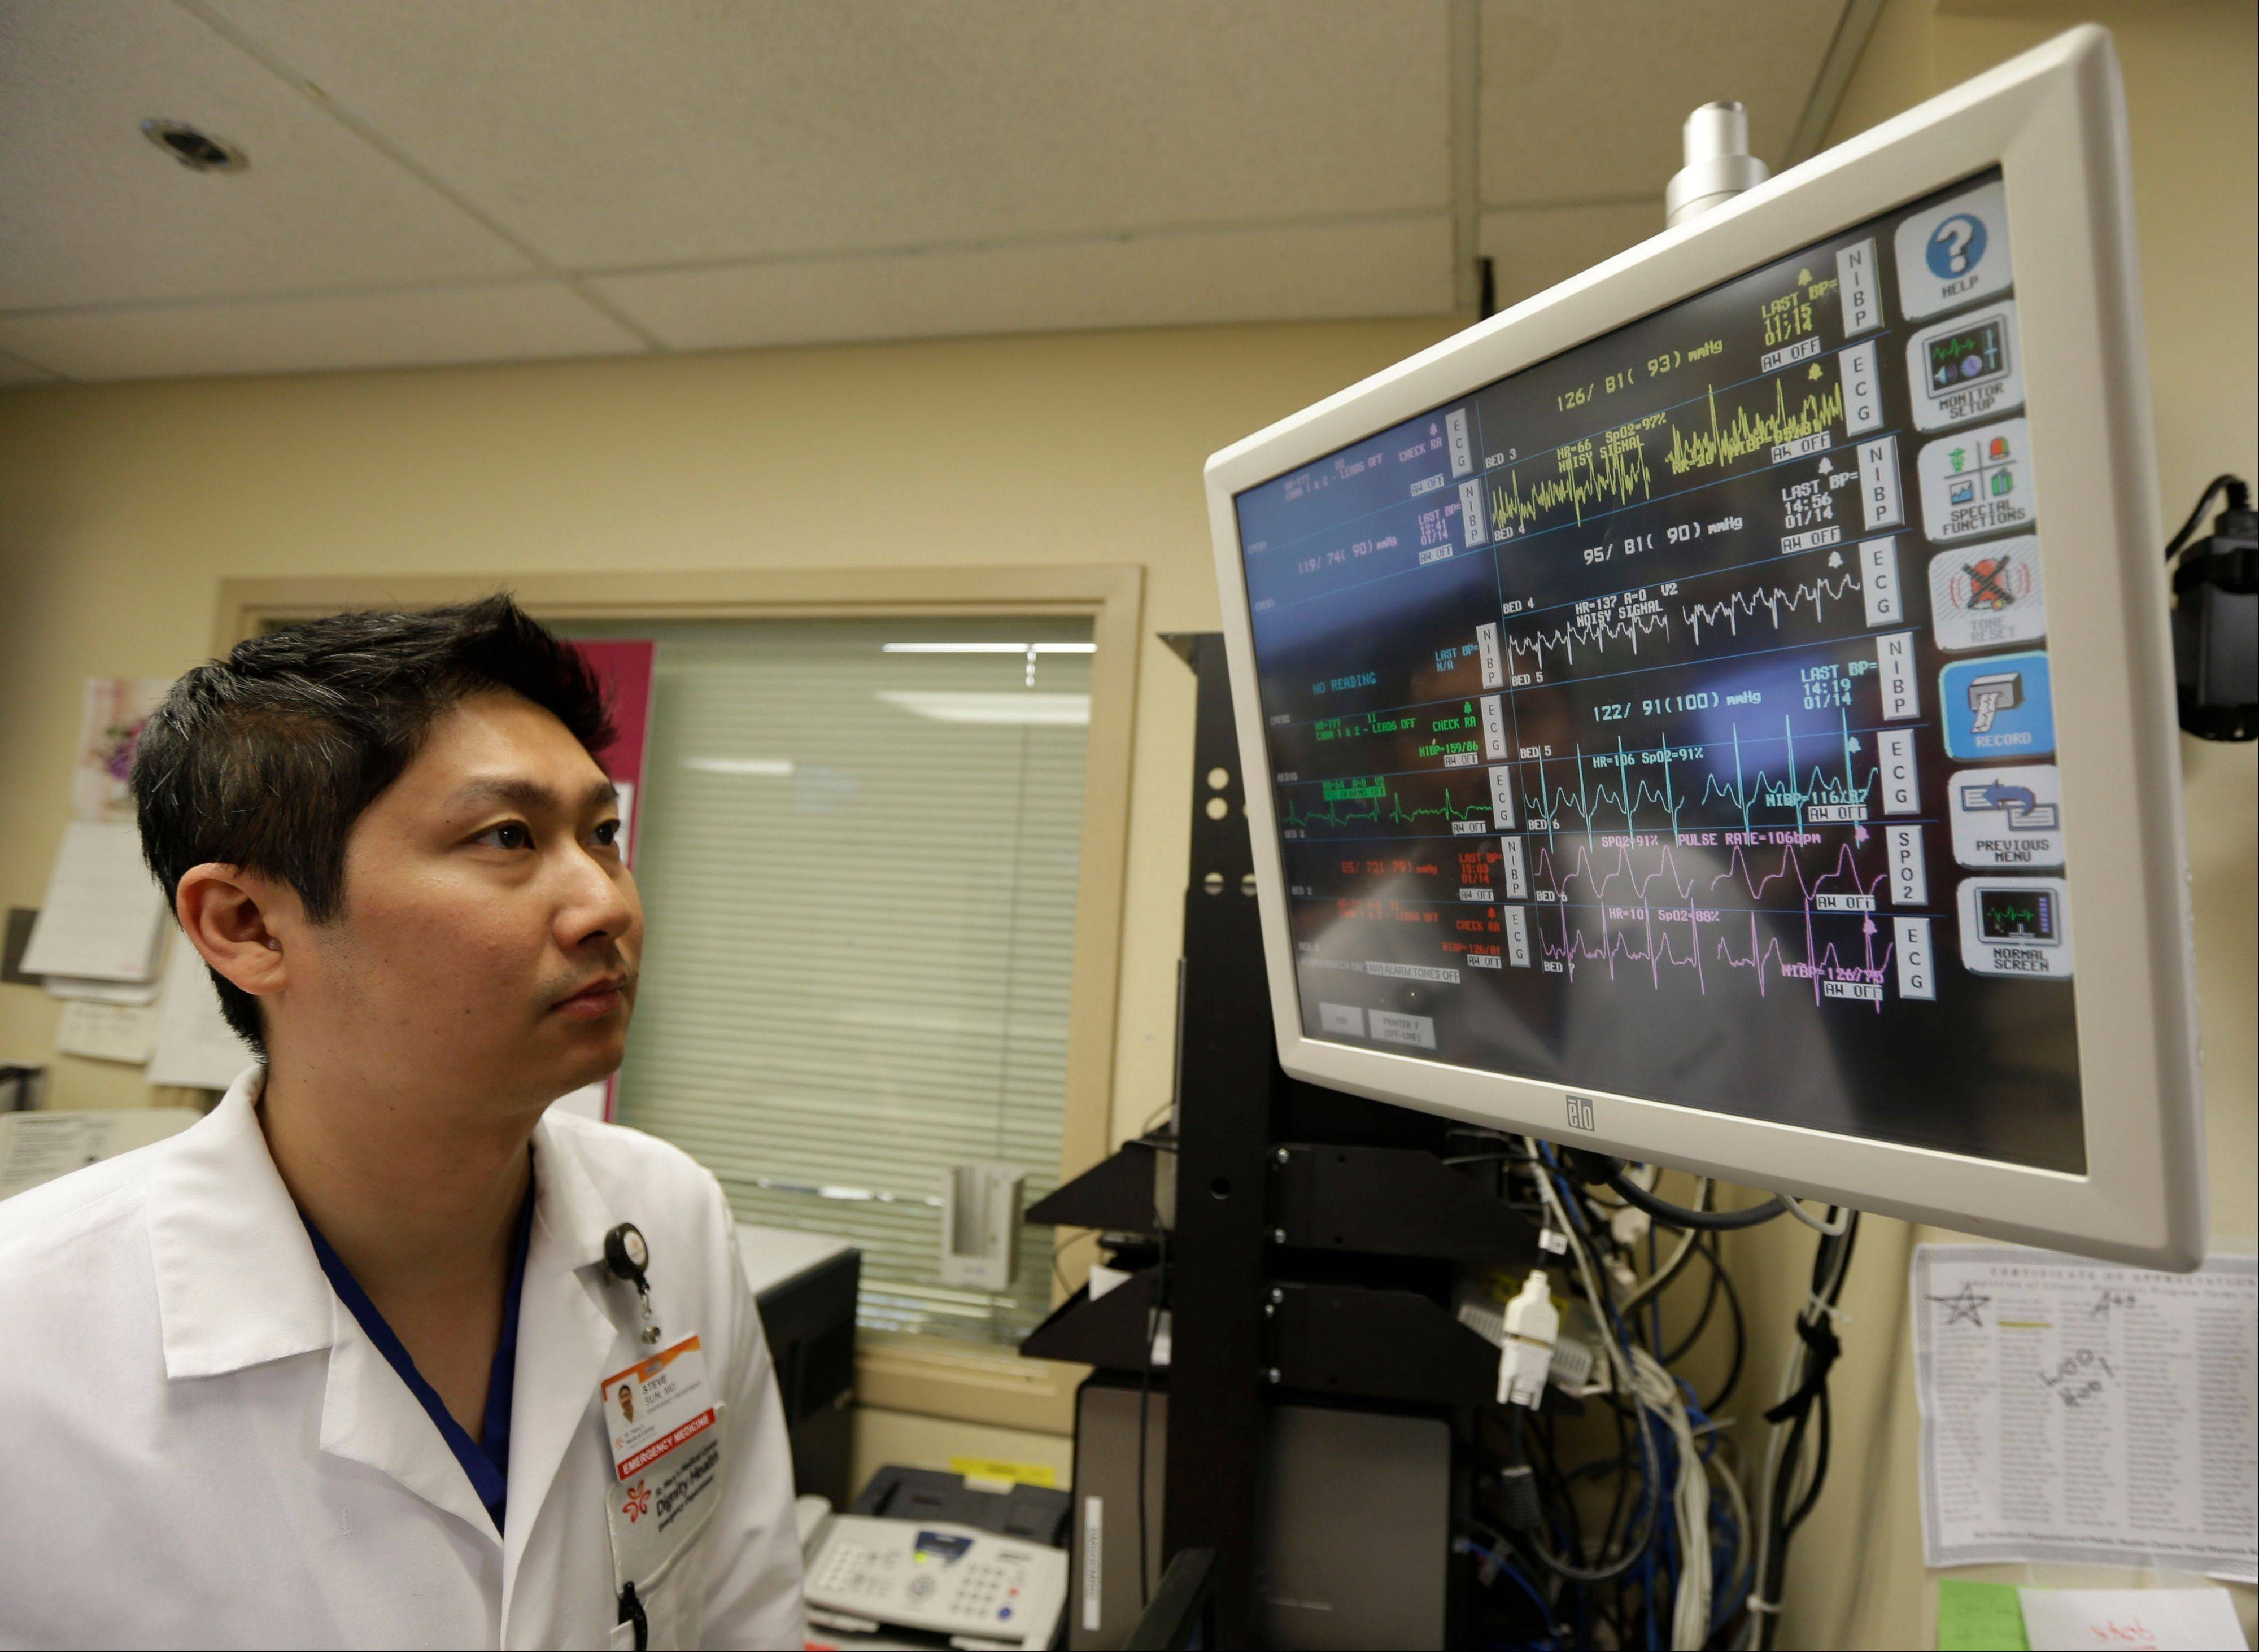 Dr. Steve Sun looks over a heart monitor display in the emergency room at St. Mary's Medical Center in San Francisco.